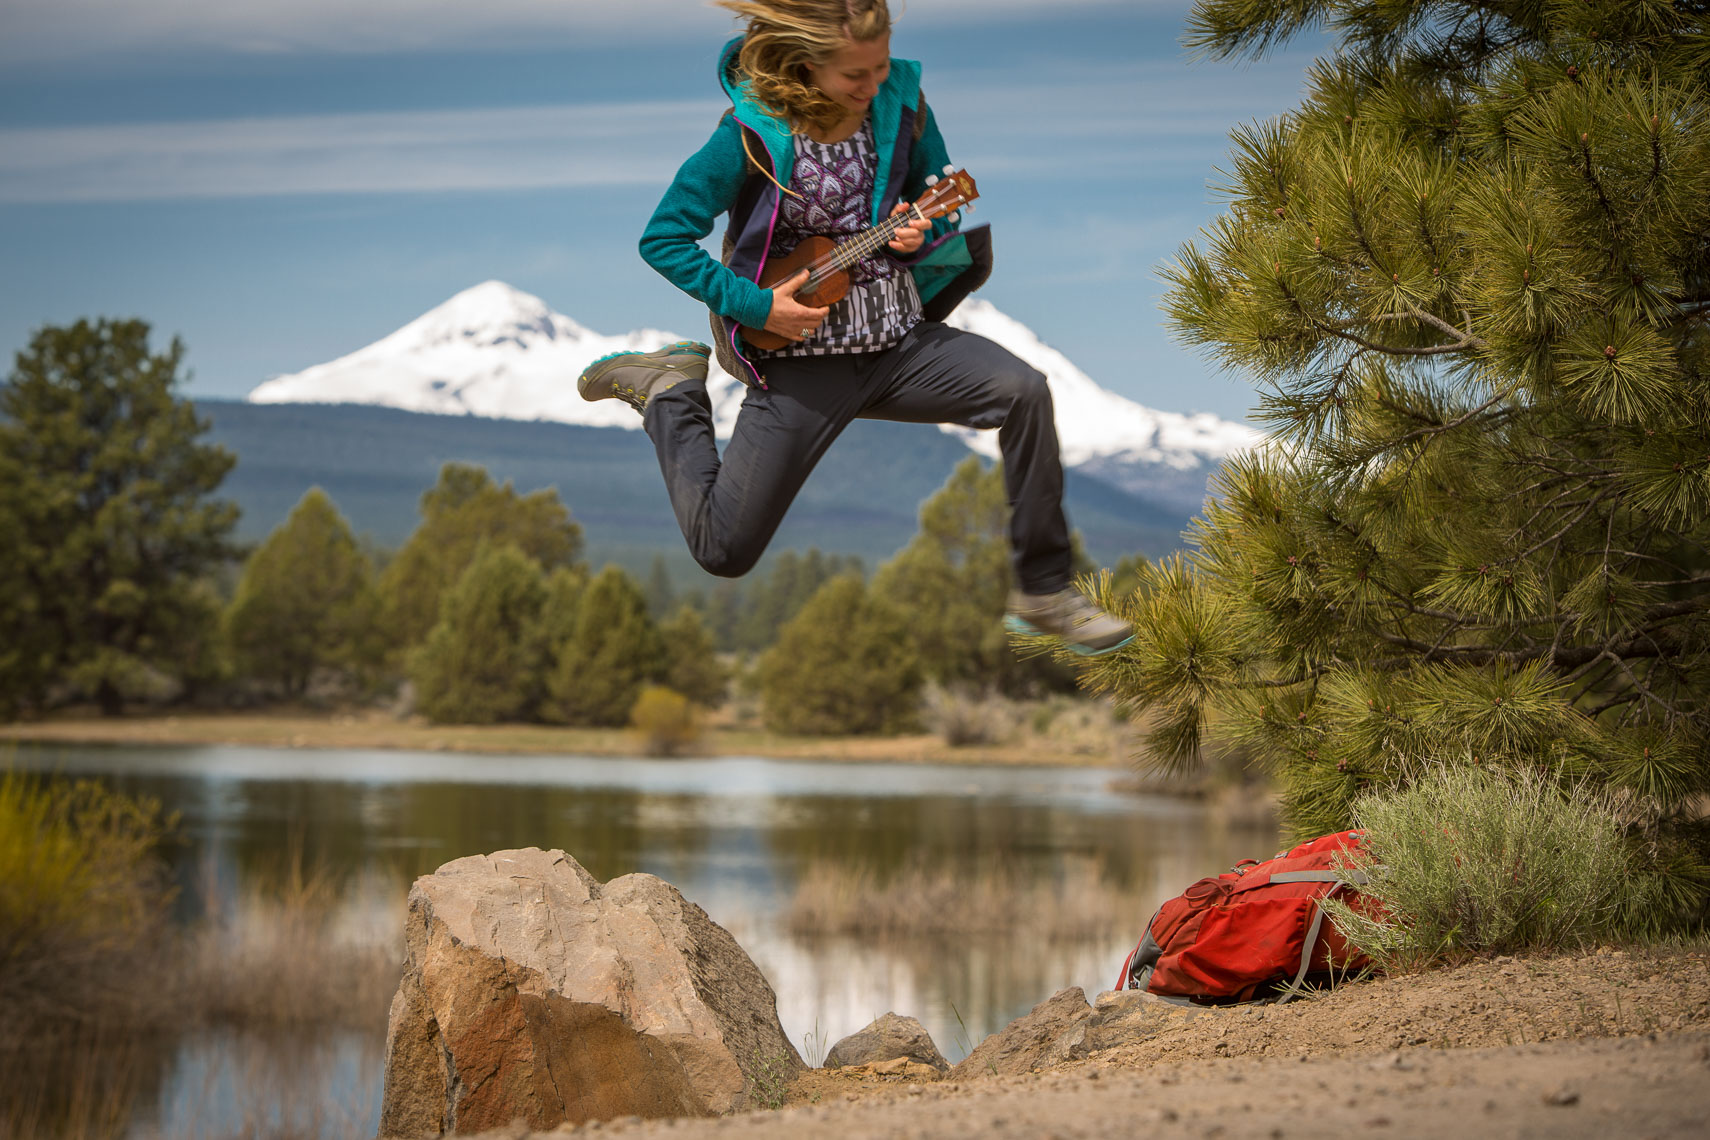 Woman Playing Ukulele in Mountains